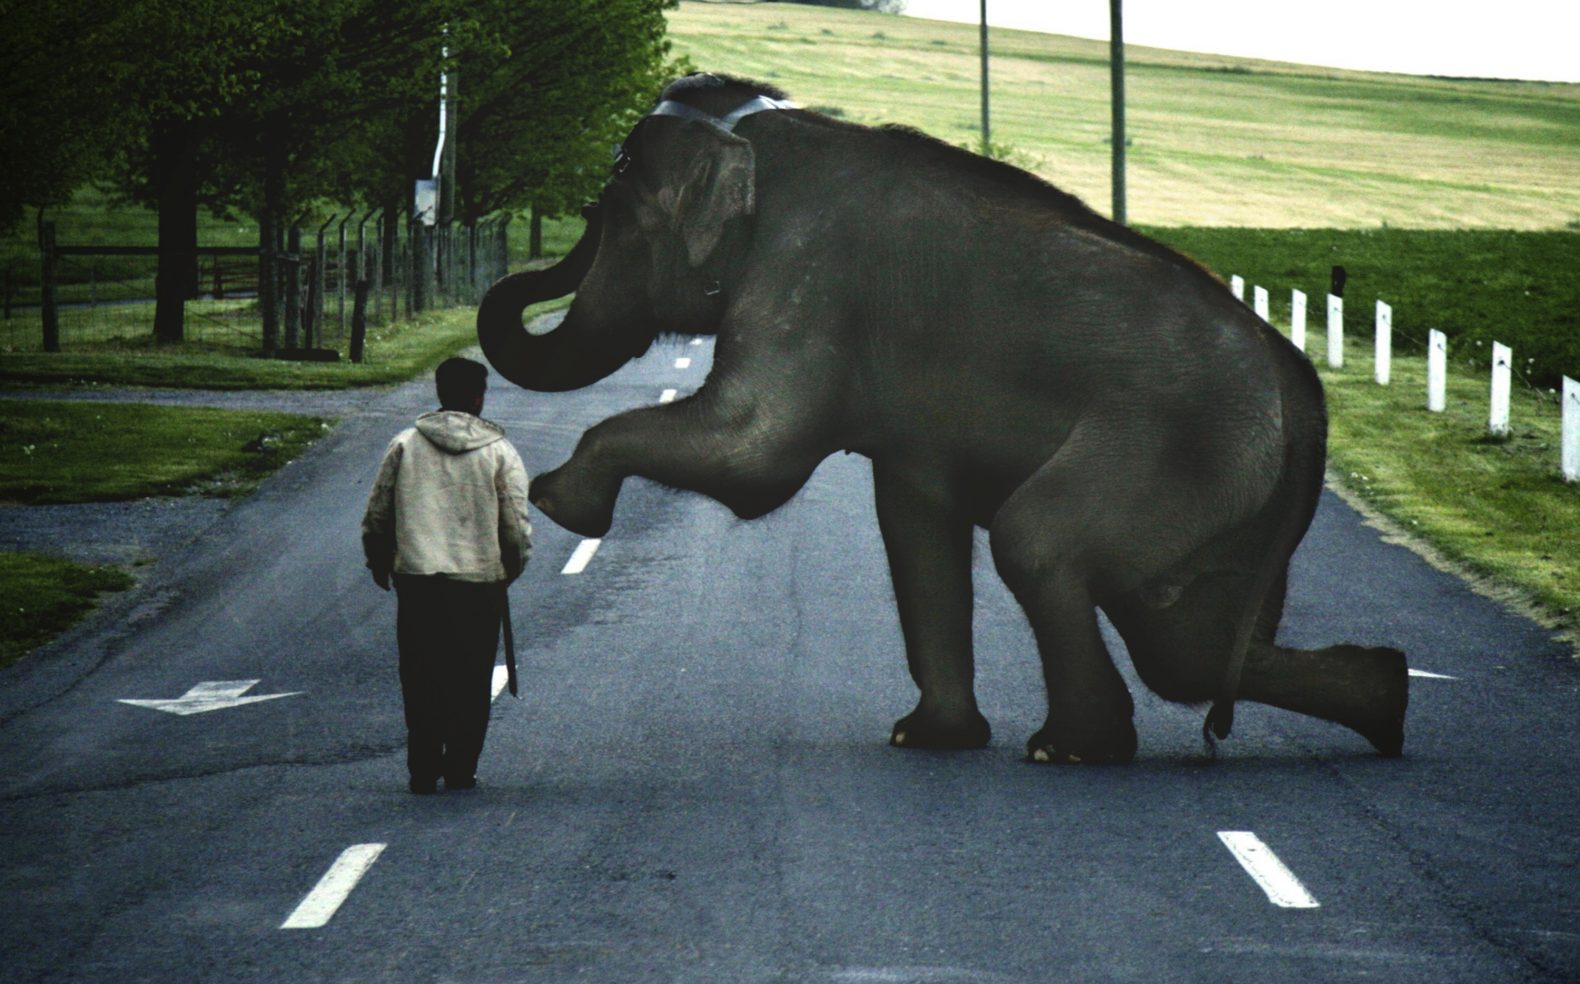 A man stands next to a kneeling elephant in a head harness on an empty asphalt street surrounded by grassy fields.